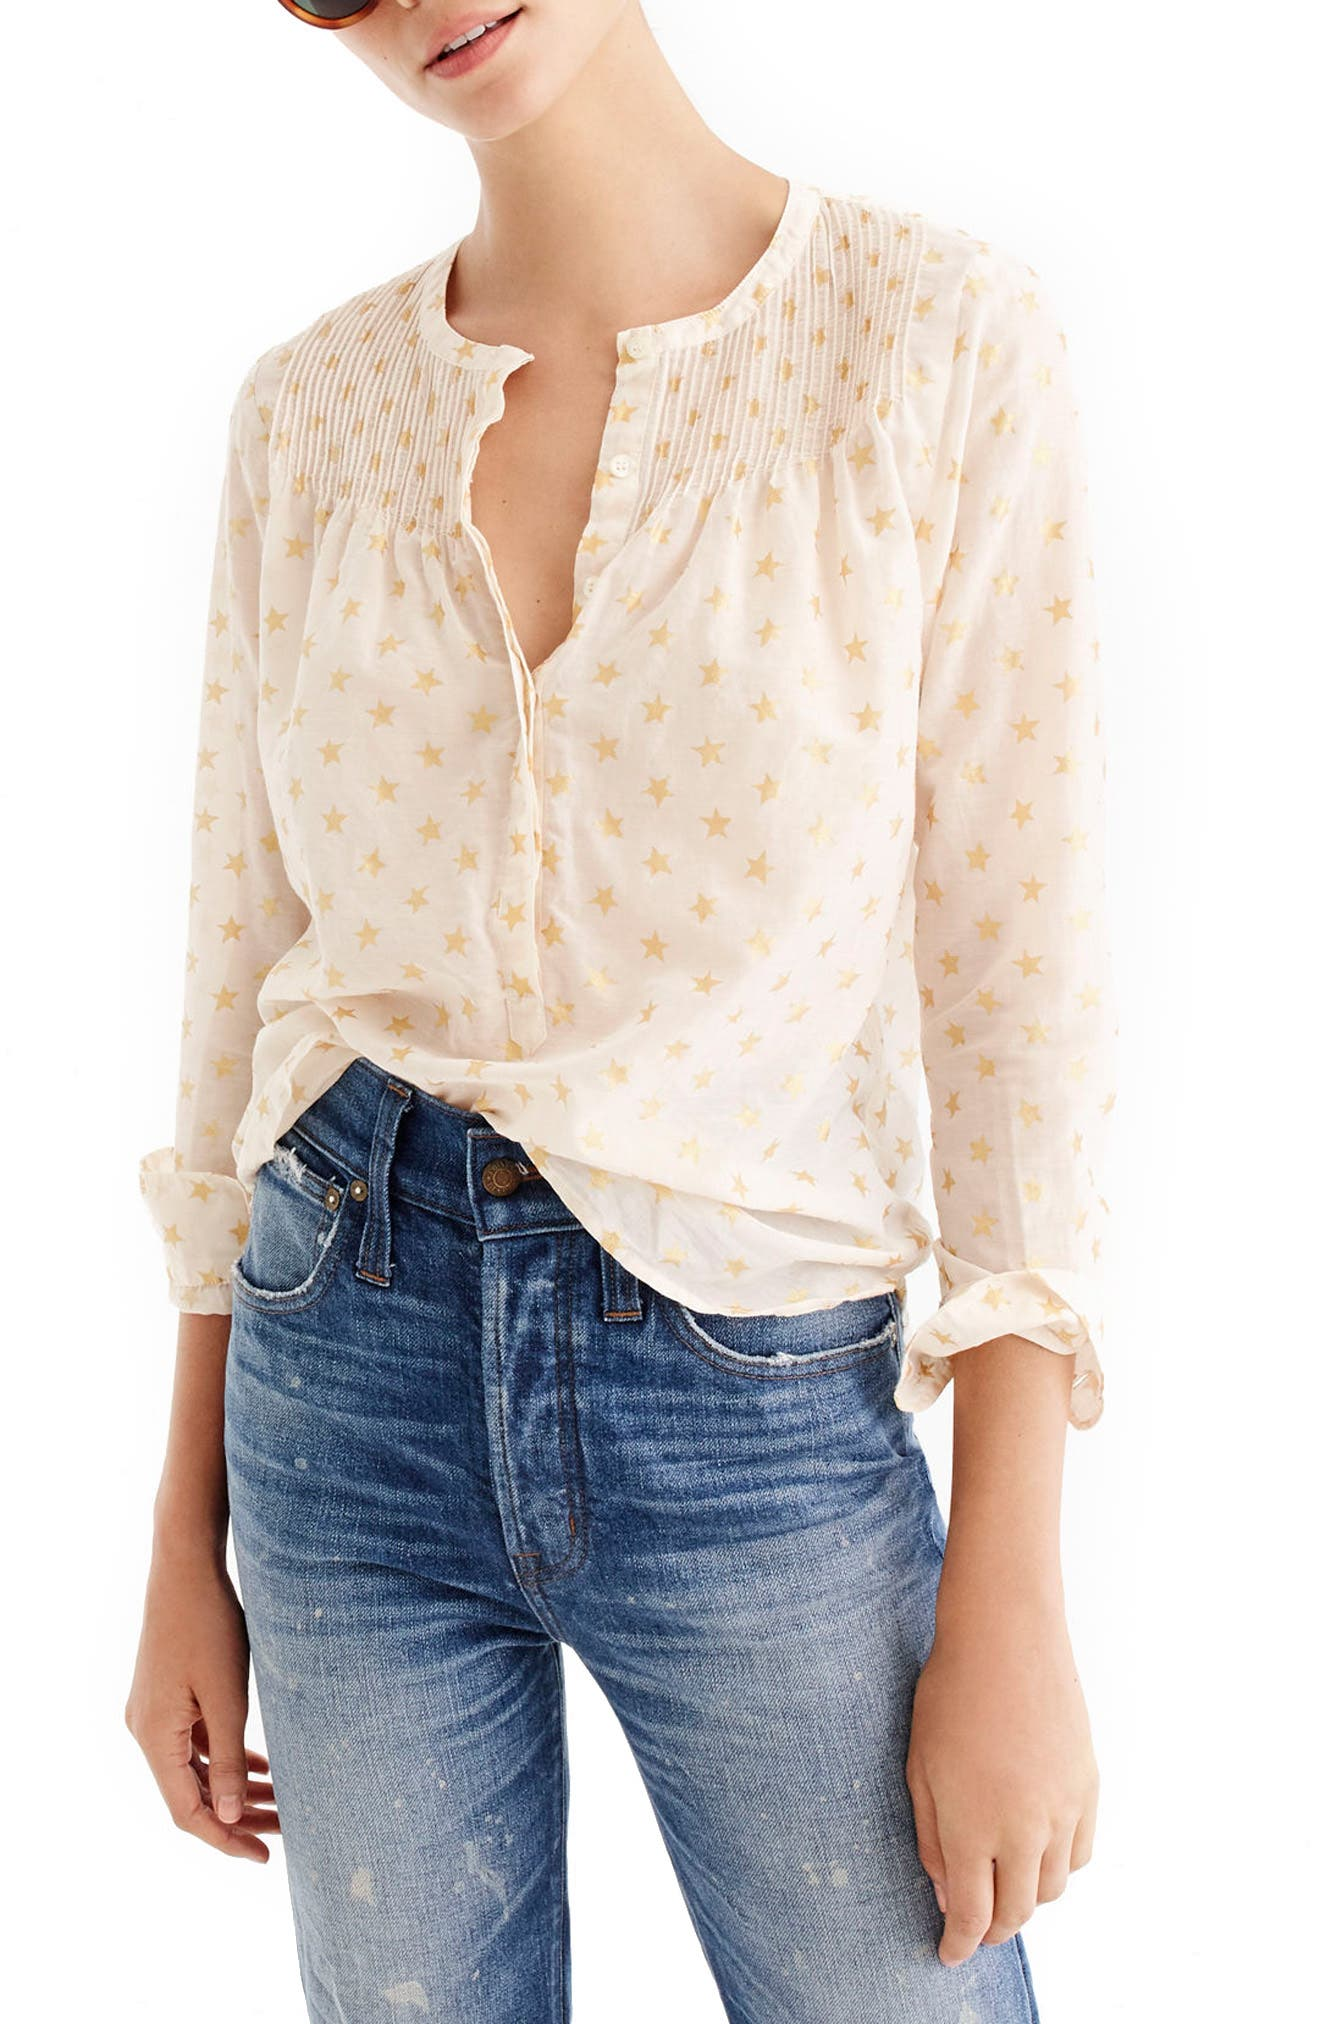 J.Crew Metallic Star Print Popover Top (Regular & Petite)